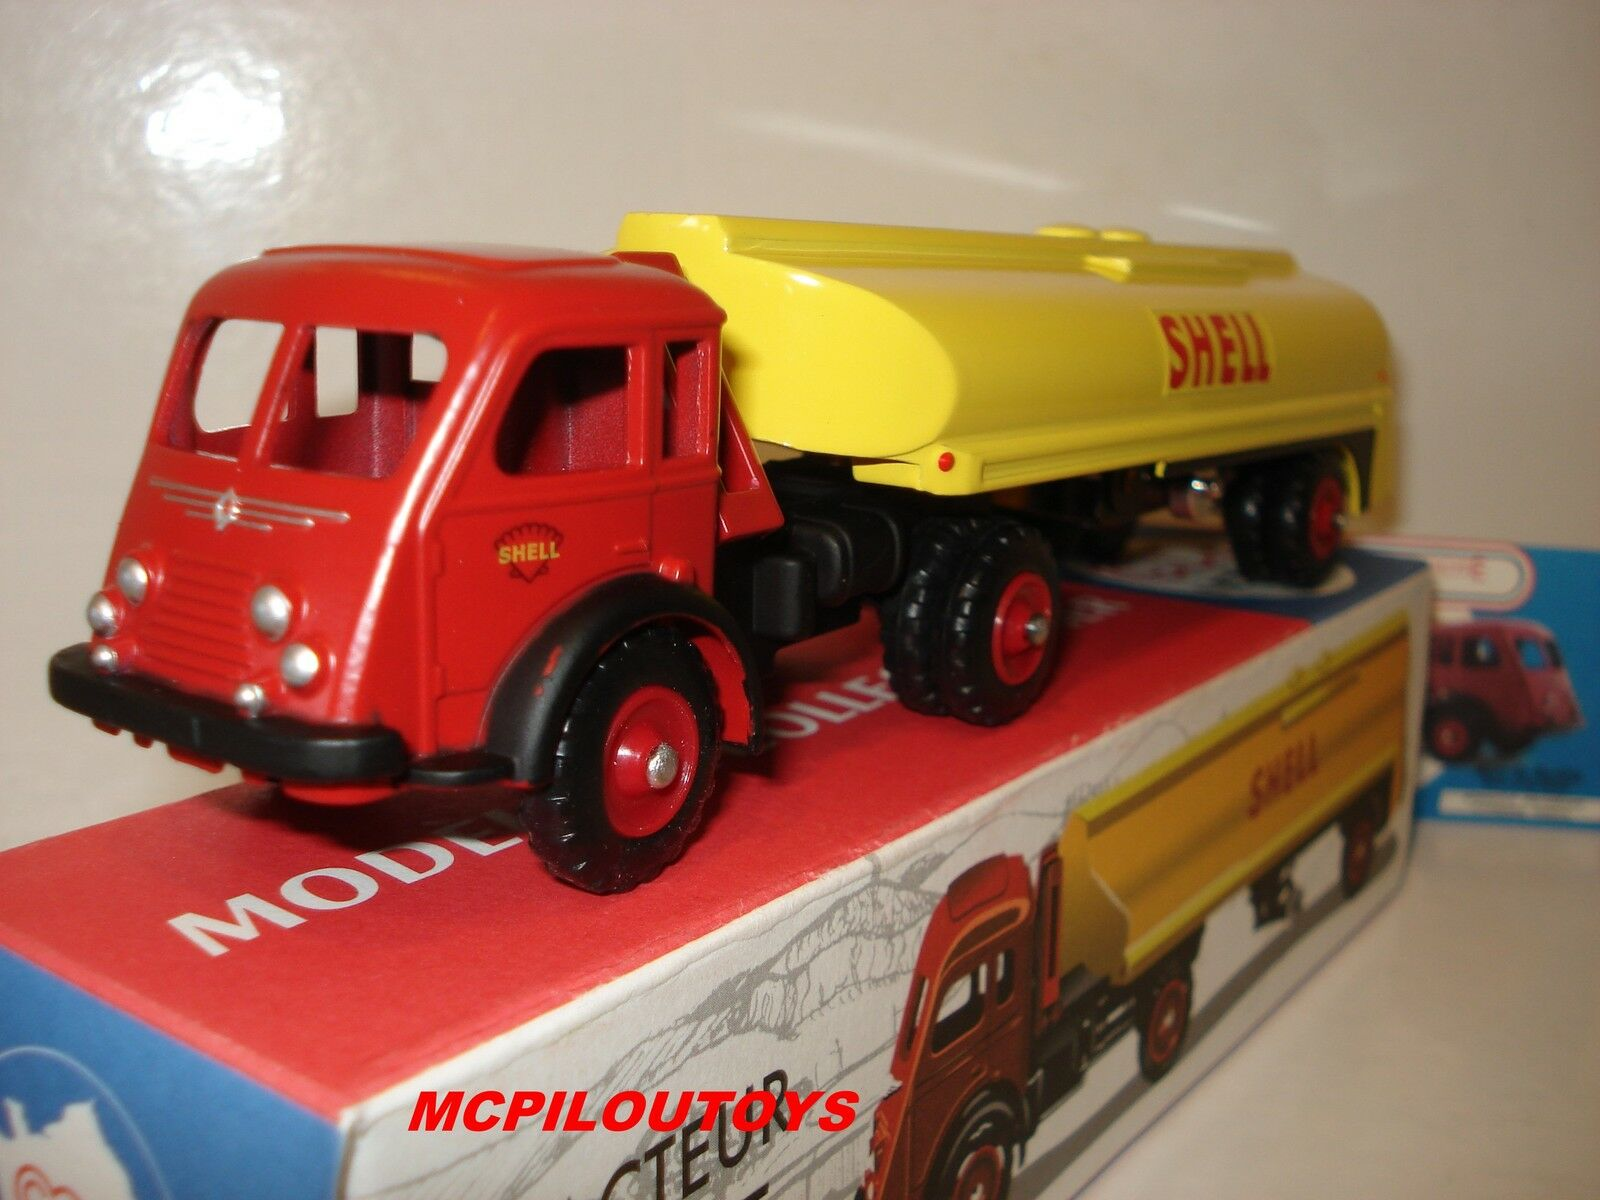 CIJ NOREV RENAULT FAINEANT AVEC SEMI CITERNE SHELL ROUES rotS REFERENCE C38301